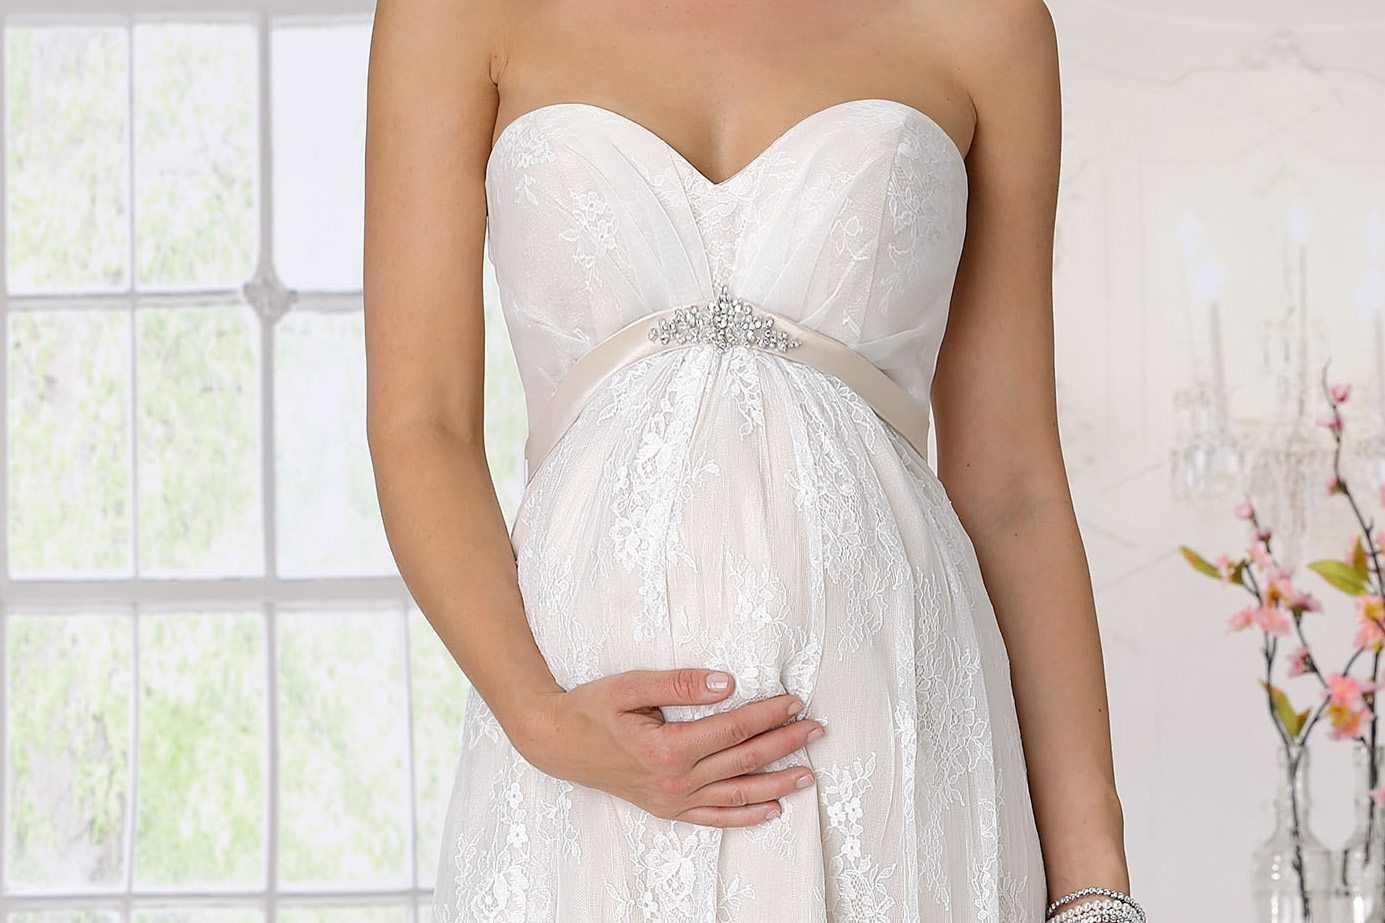 """Pregnant and I'm getting married!"". How to find the perfect maternity dress?"